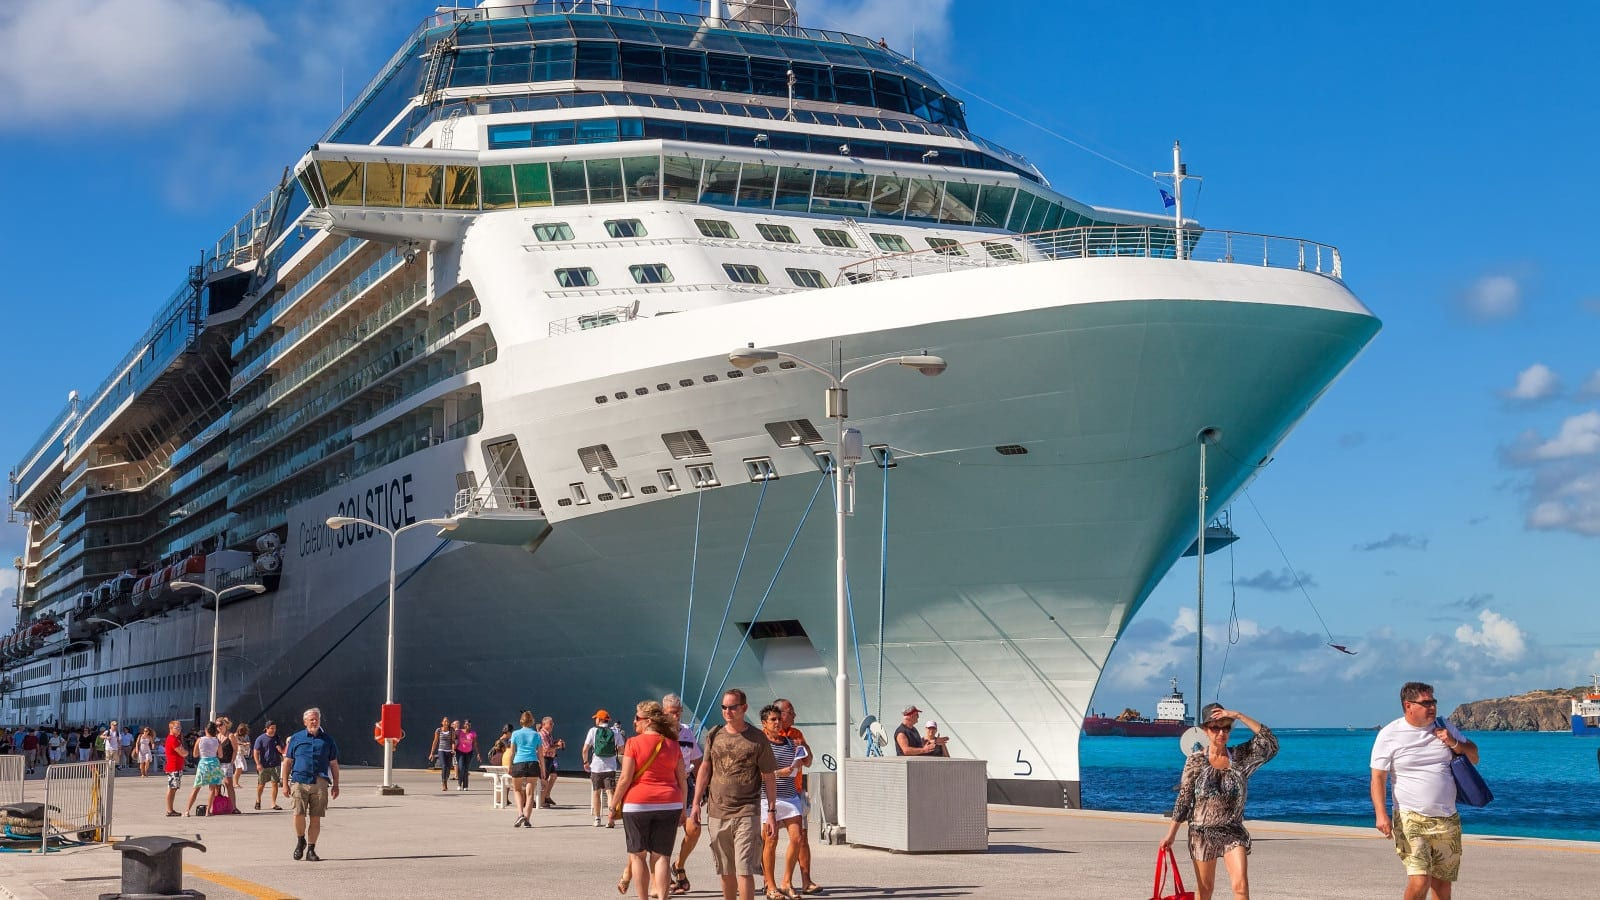 Large Cruise Ship Docked At A Port Stock Photo